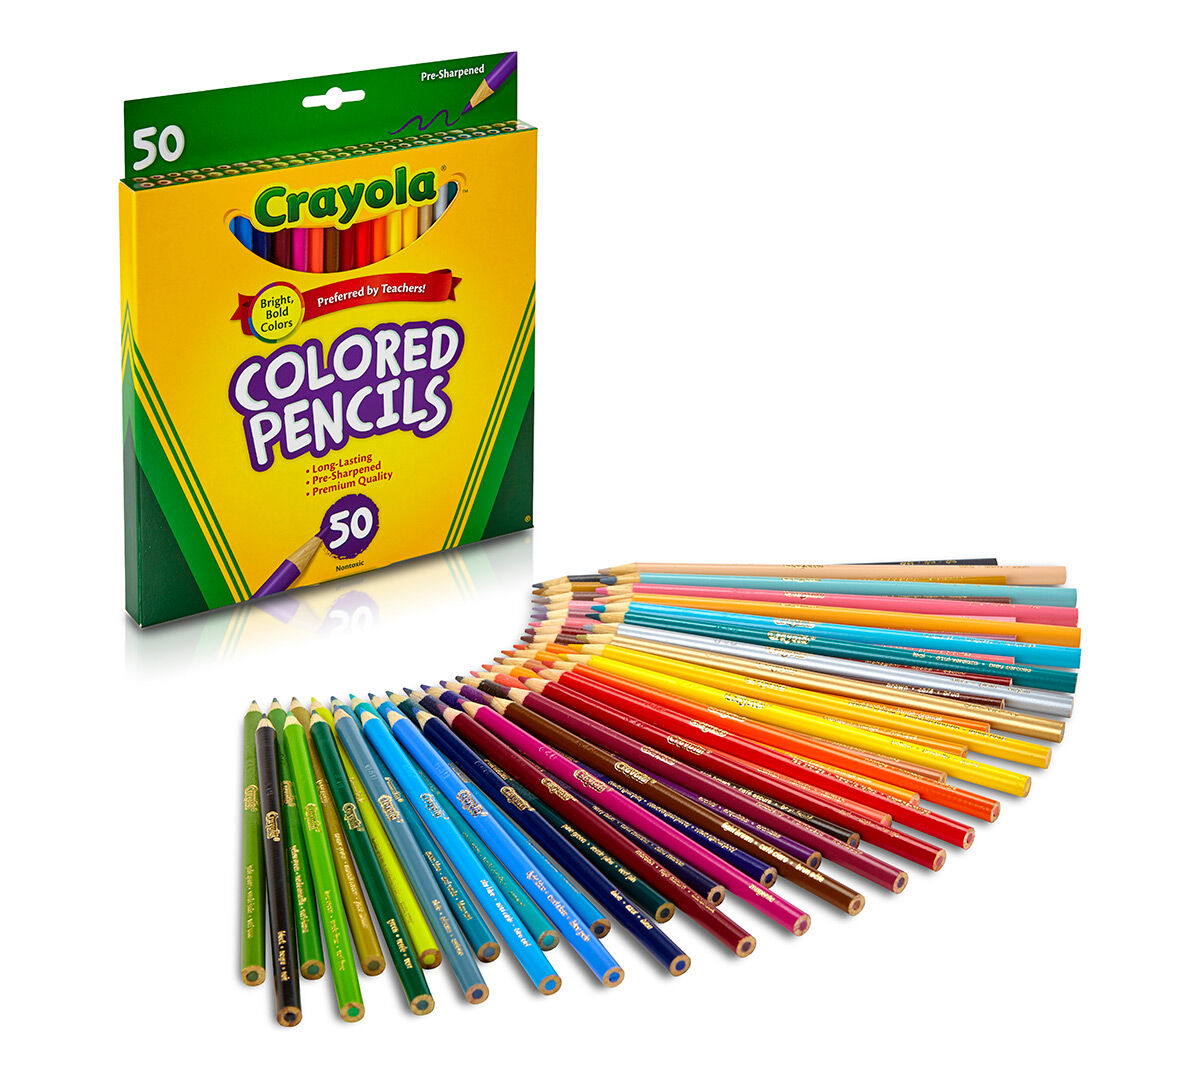 50 ct colored pencils long - Crayola Write Start Colored Pencils